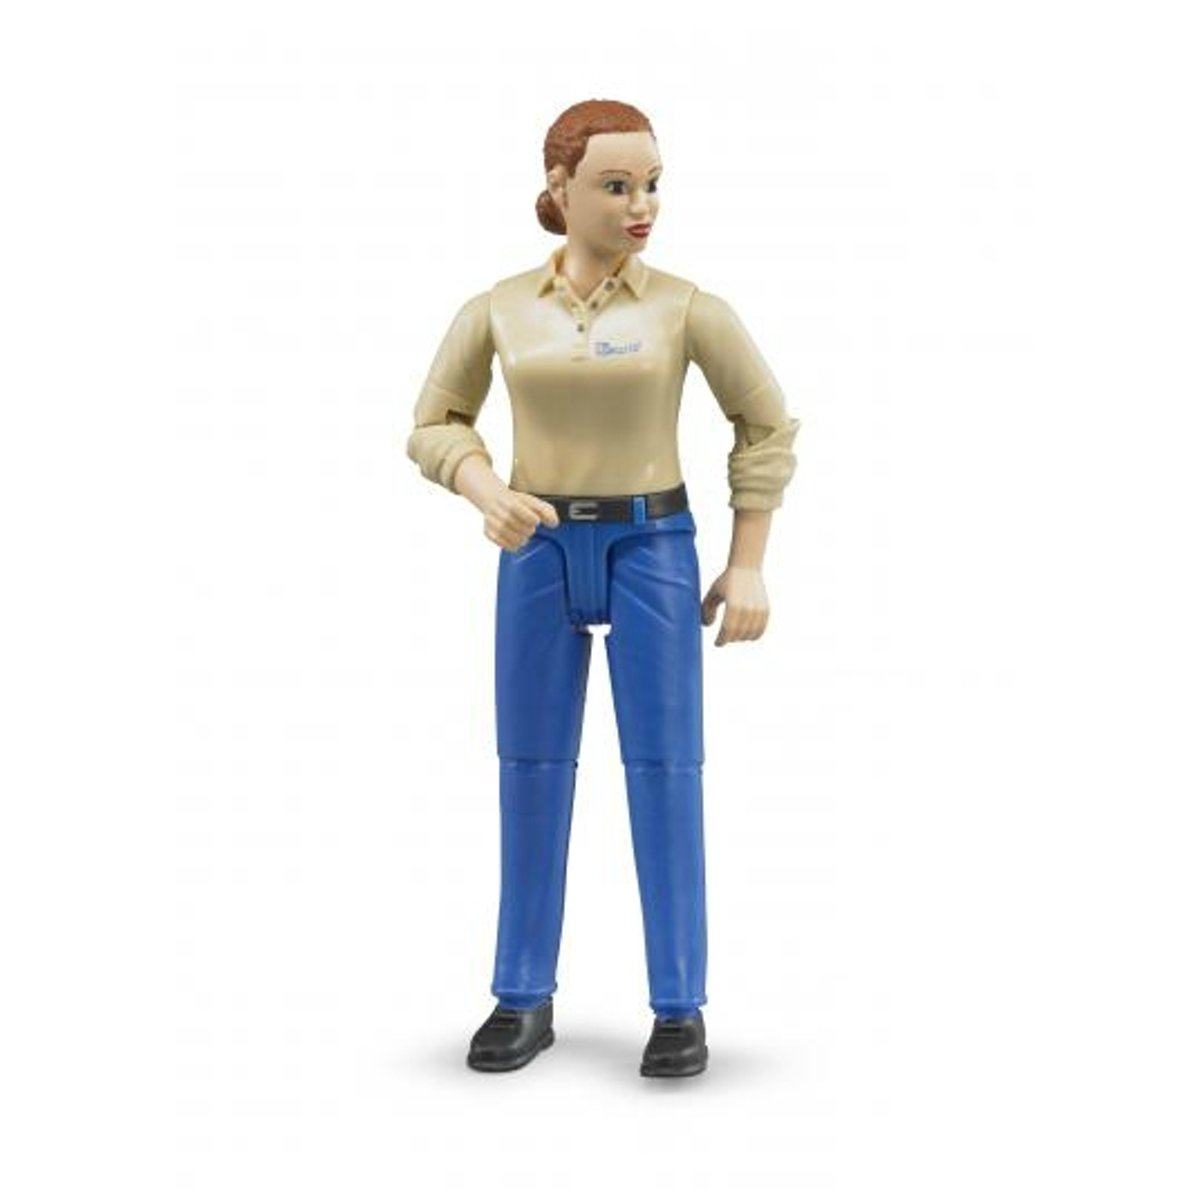 BRUDER Woman with light skin tone and blue trousers pop